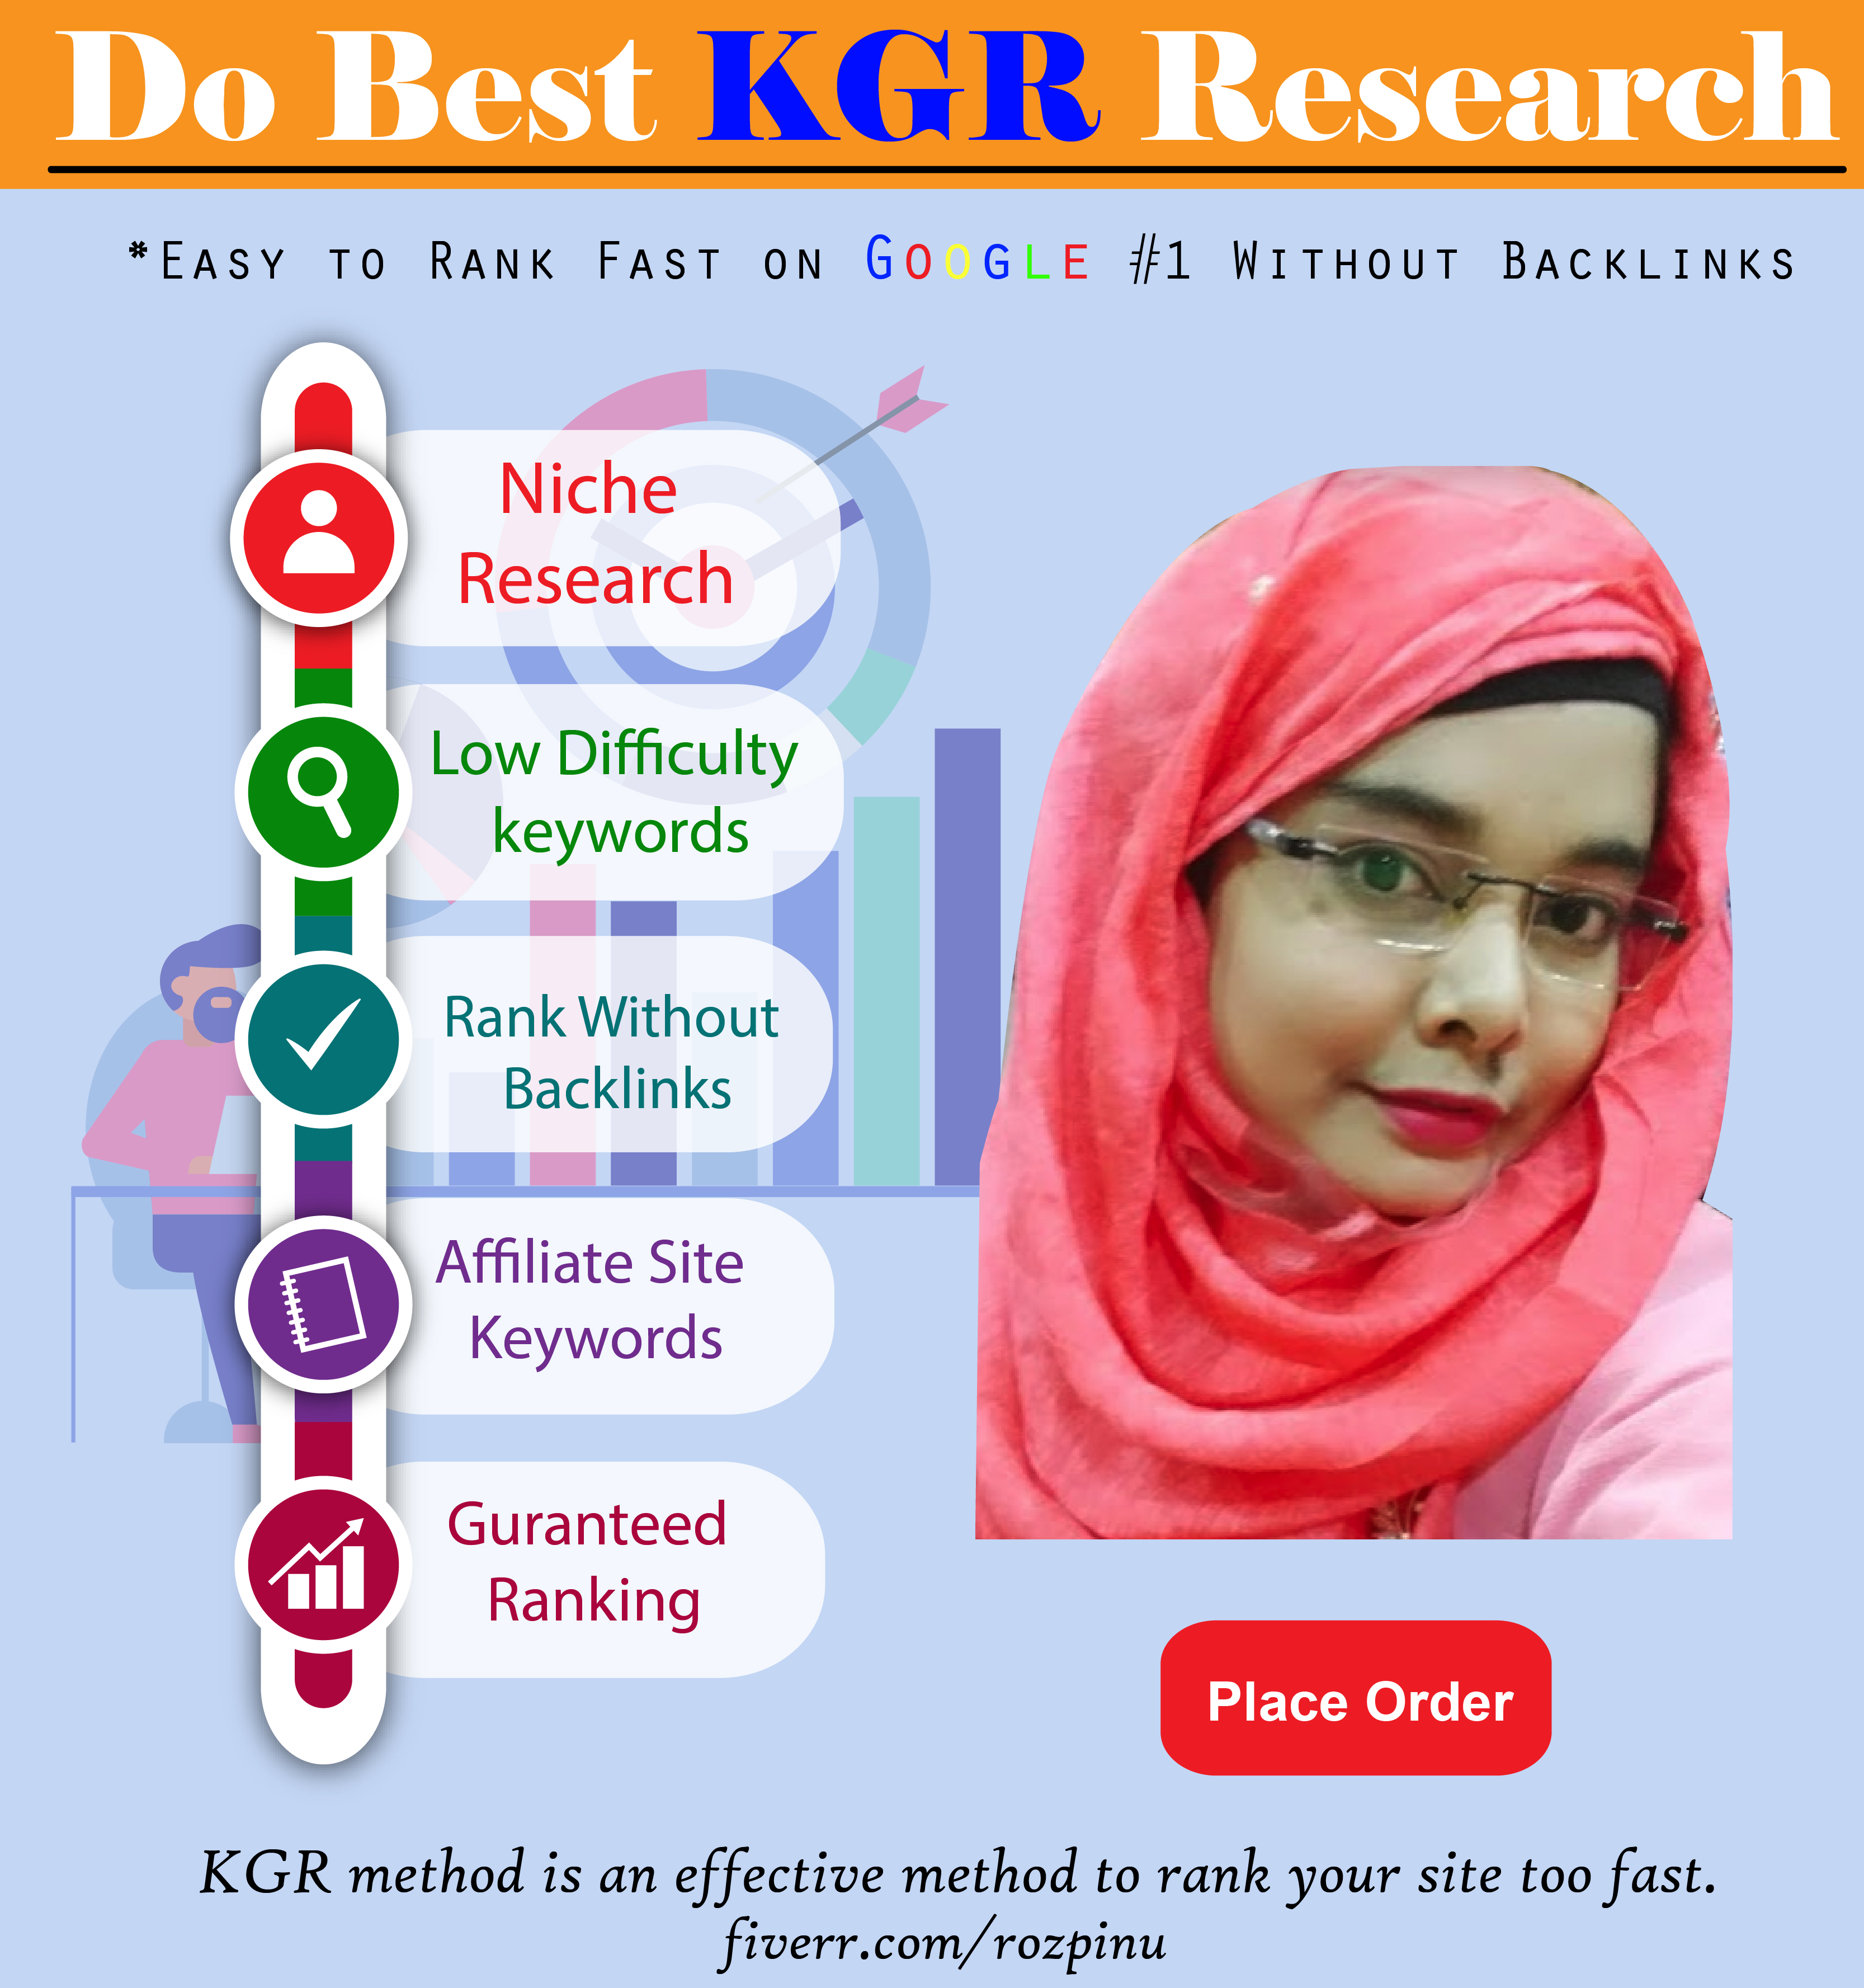 I will find KGR keywords that will rank fast on Google